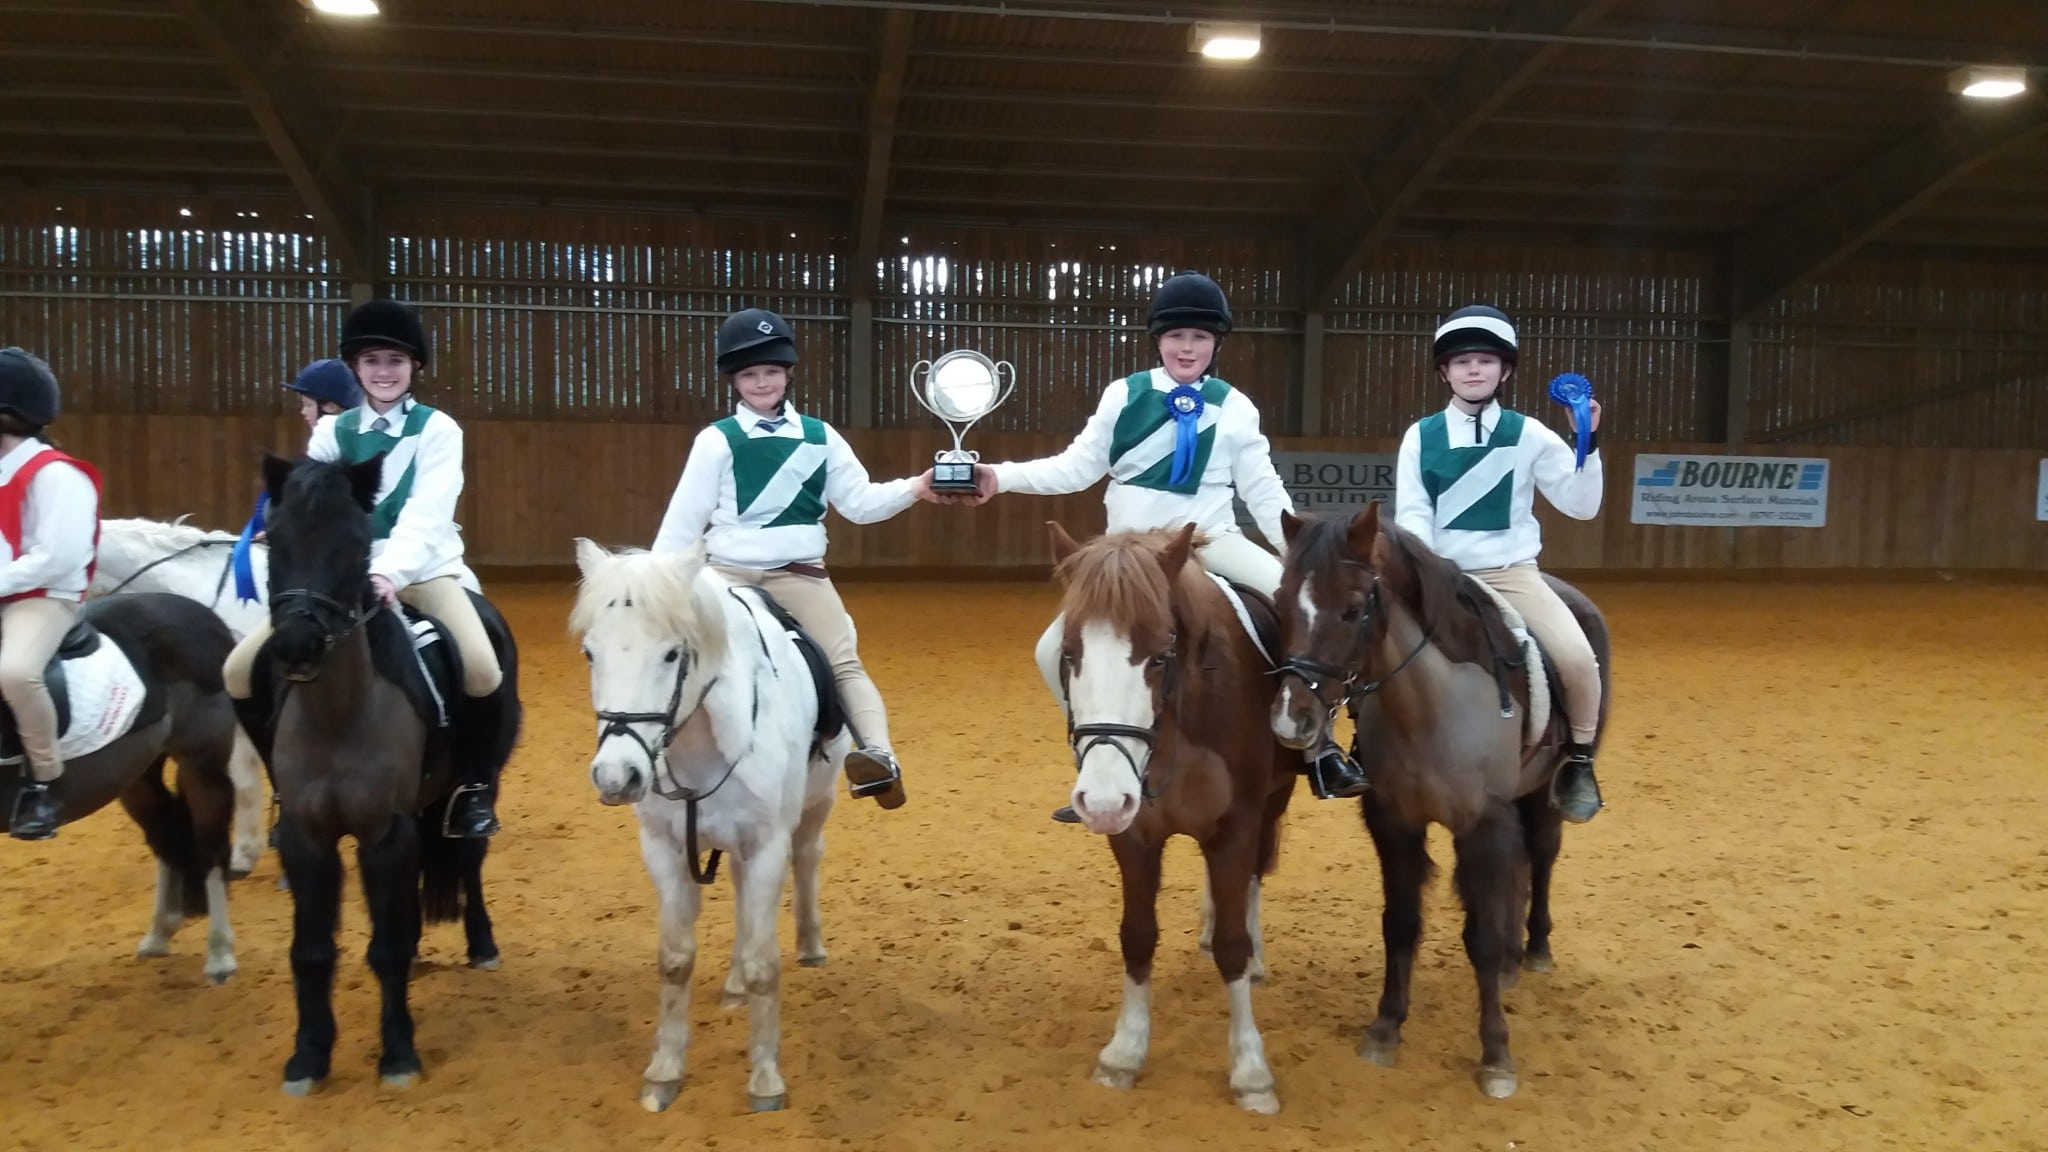 mounted games ashford valley hunt all team members were happy to swap running orders according to their strengths and for the benefit of the teams